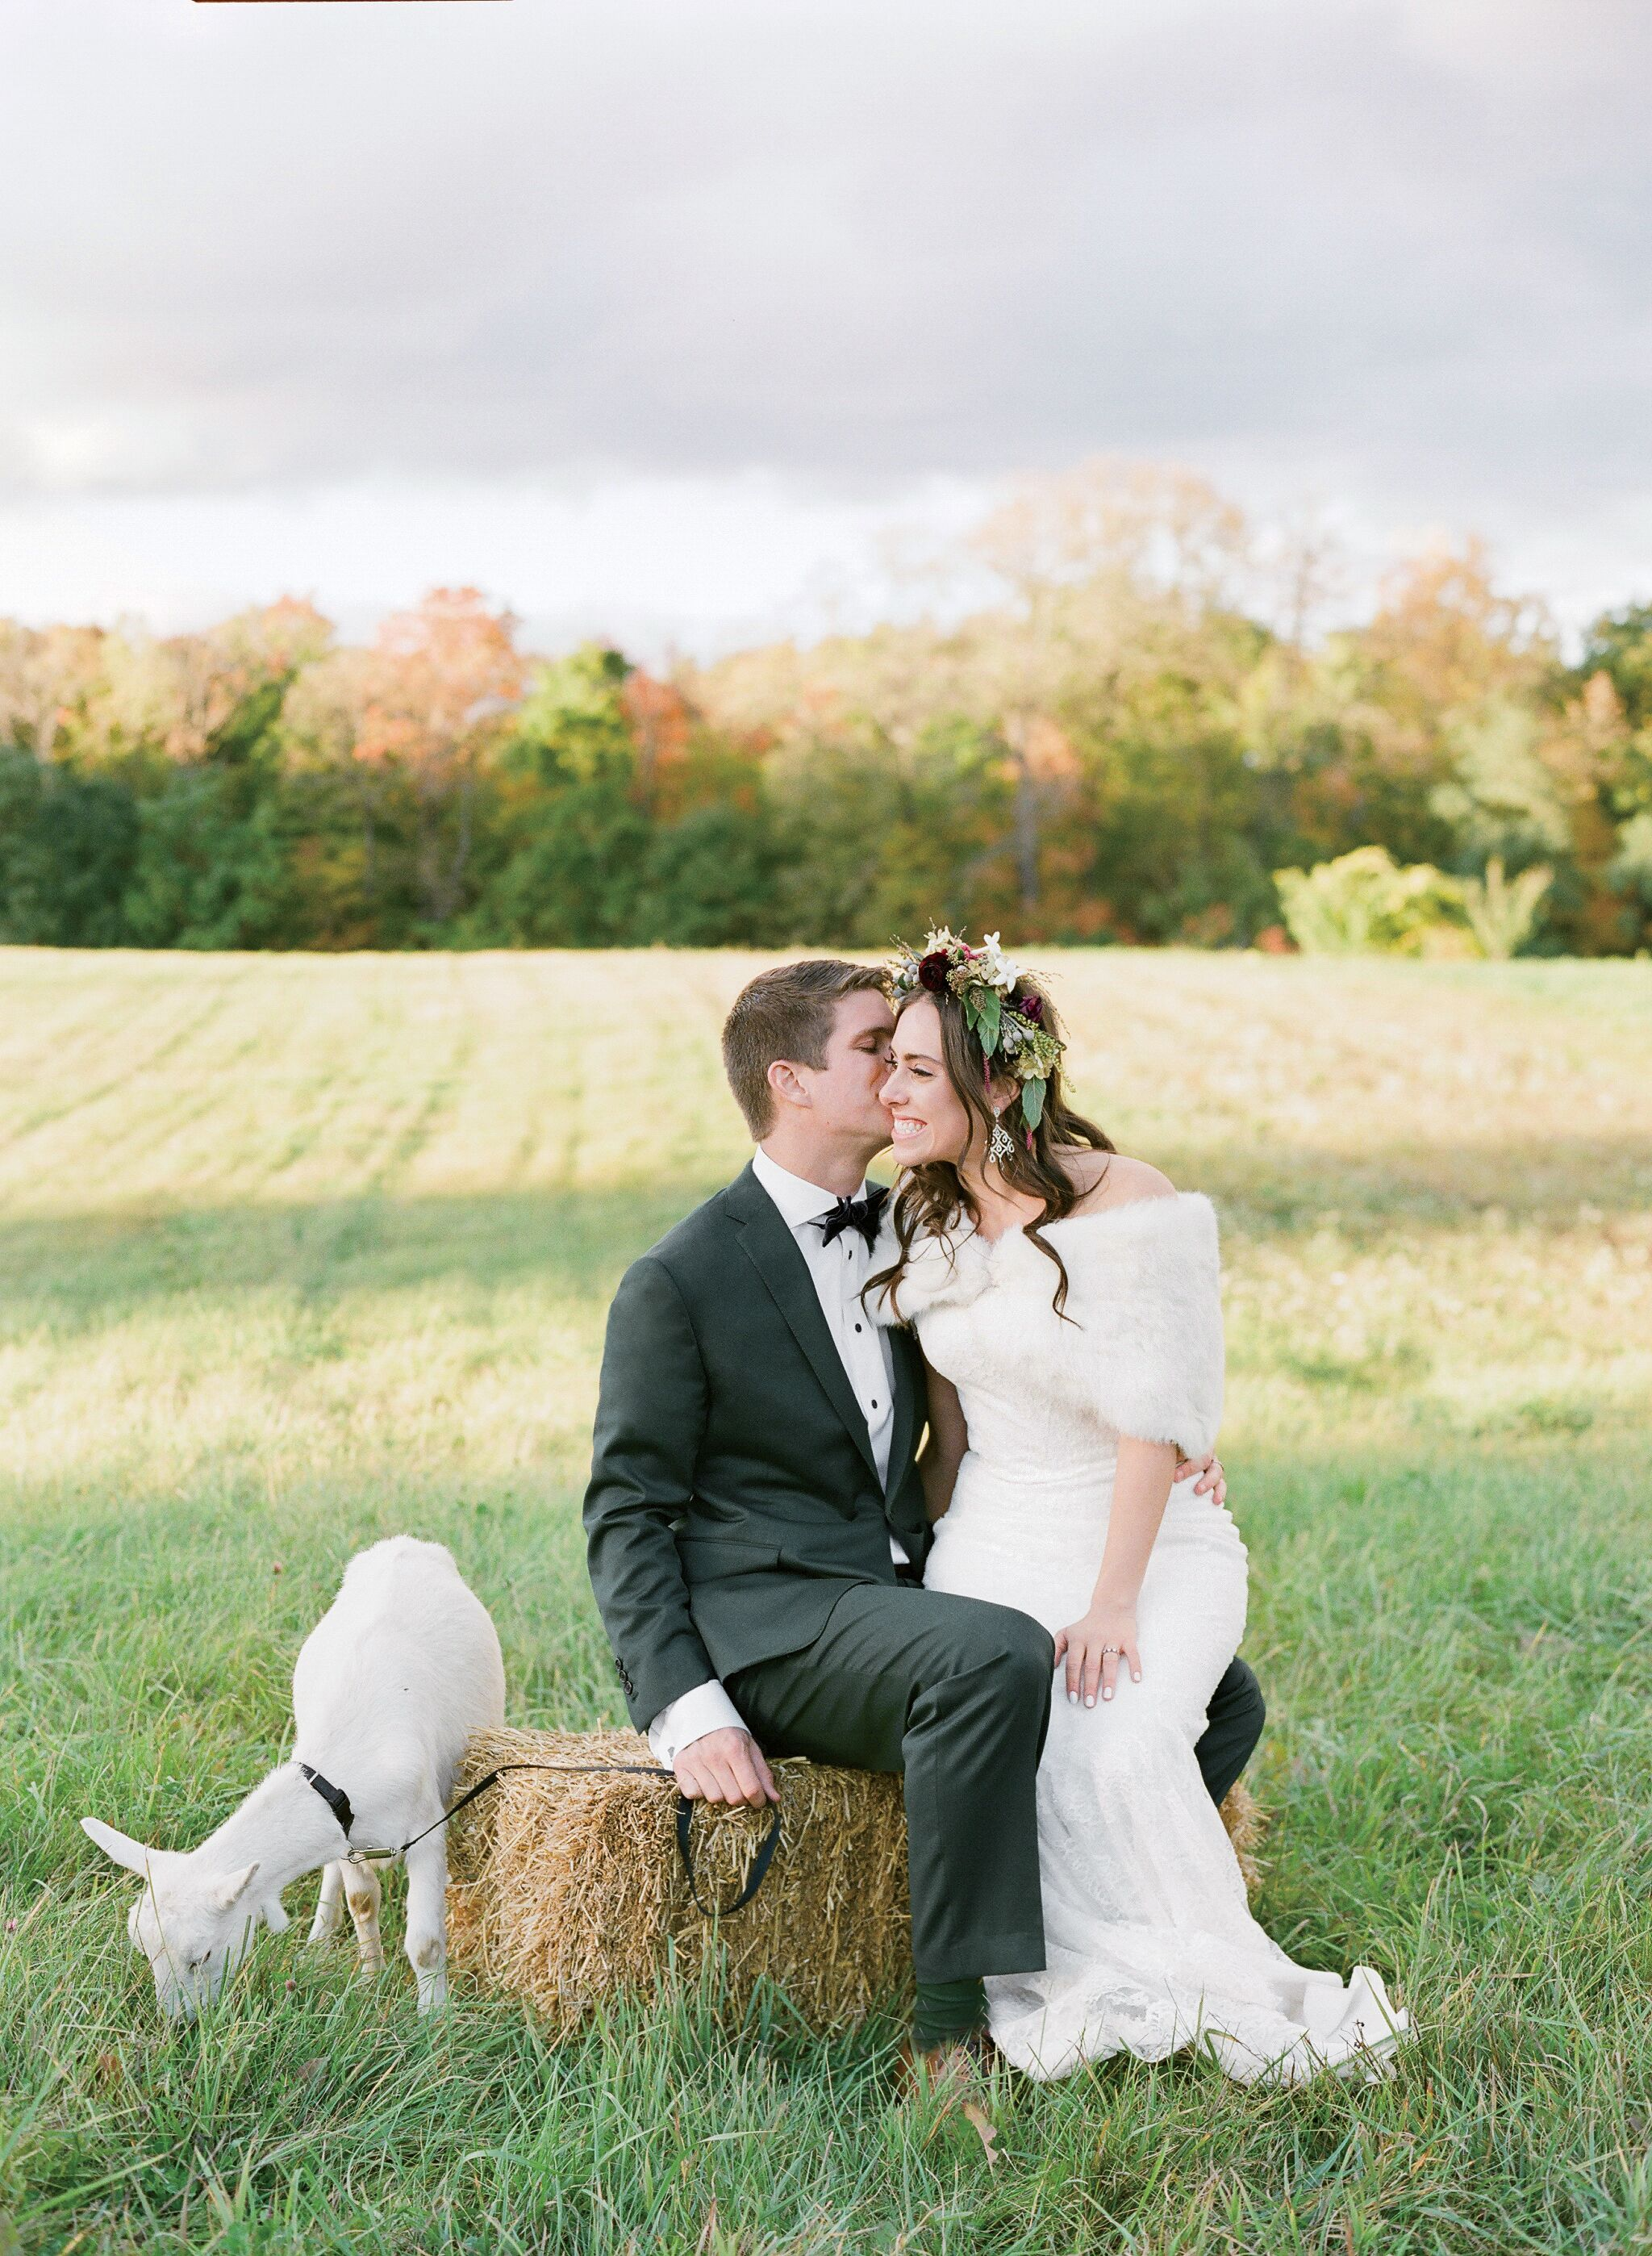 An Eclectic Wedding At Miller Nurseries In Canandaigua